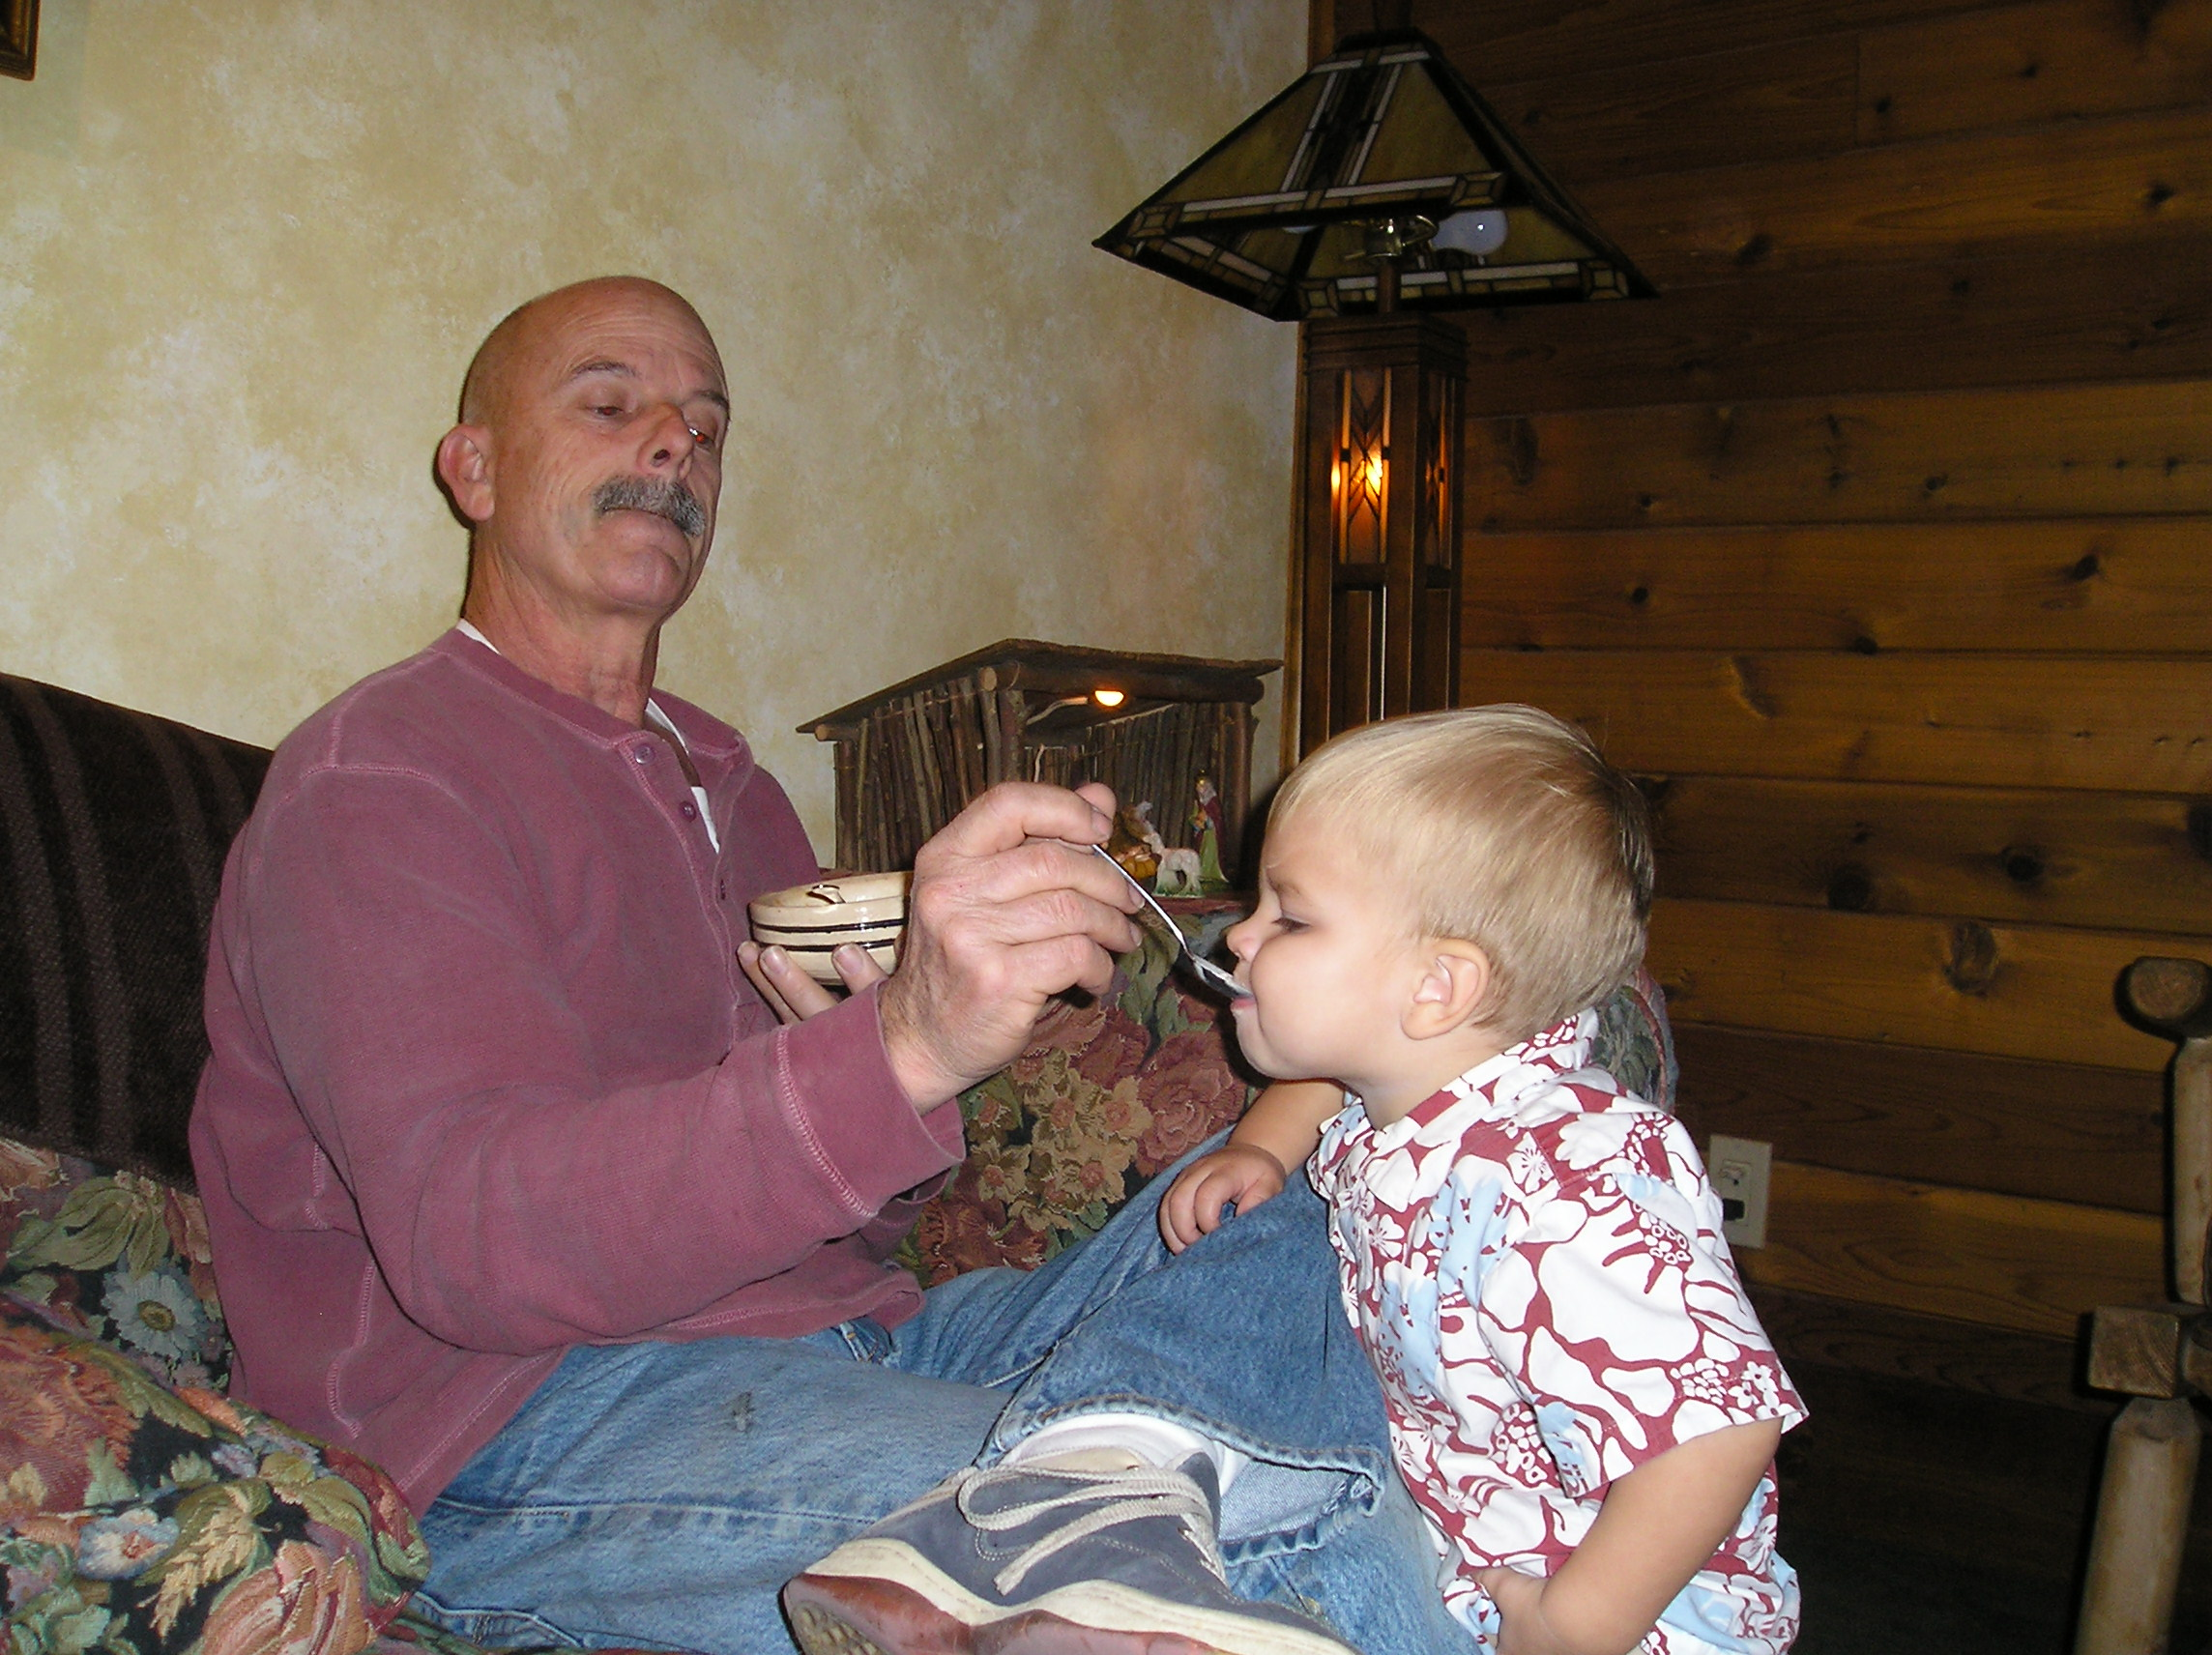 2006 - Gary shares his ice cream with grandson, Micah.